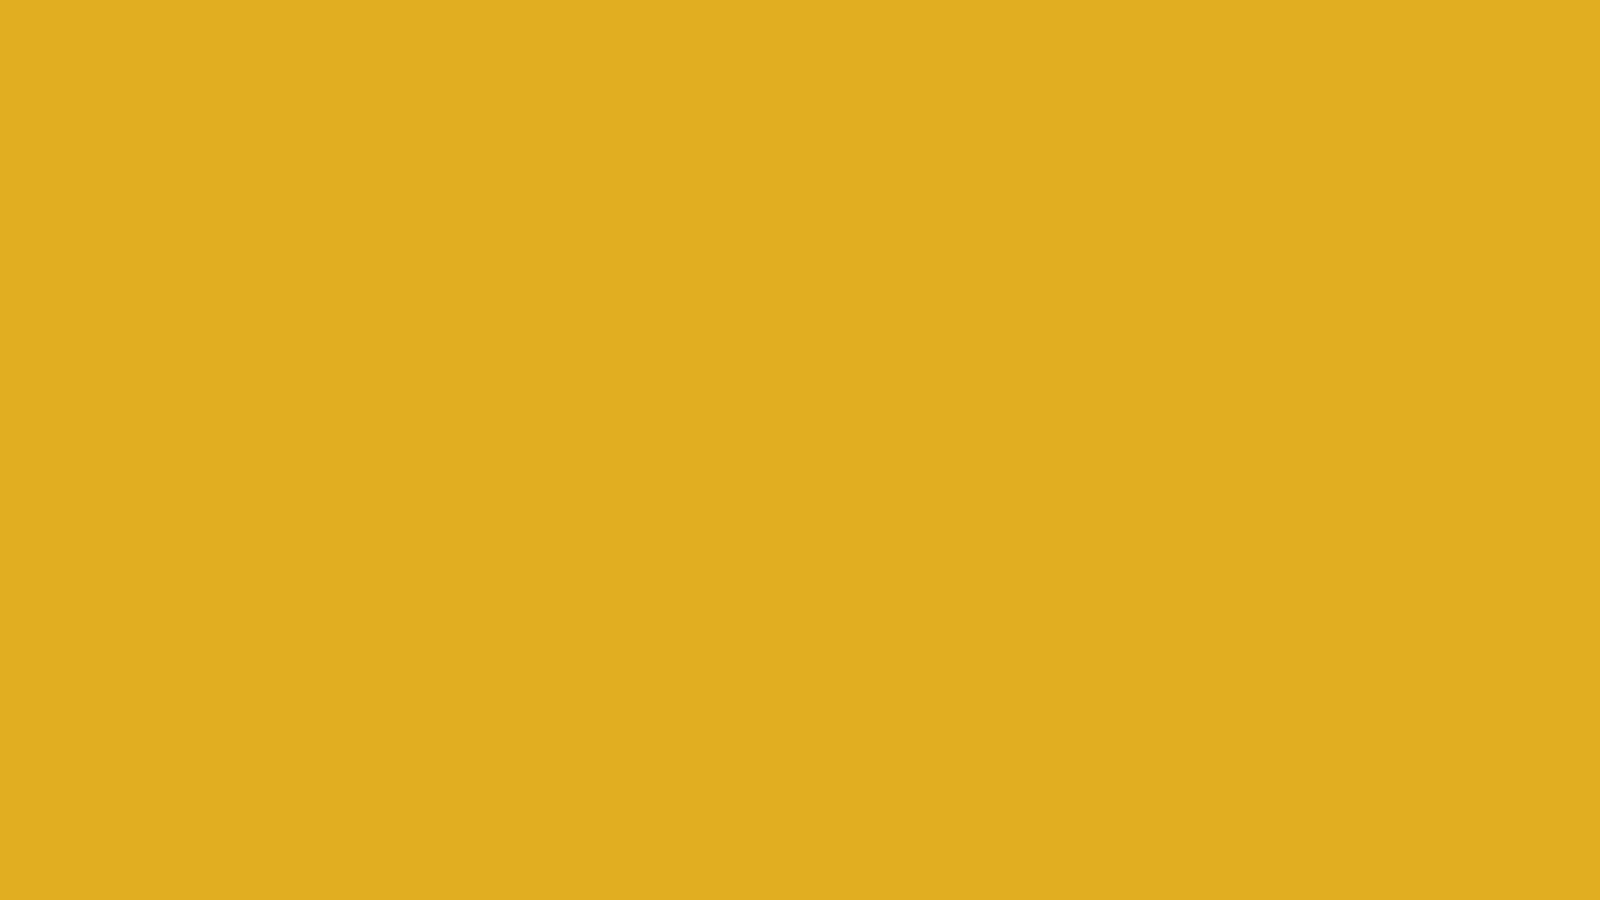 1600x900 Urobilin Solid Color Background